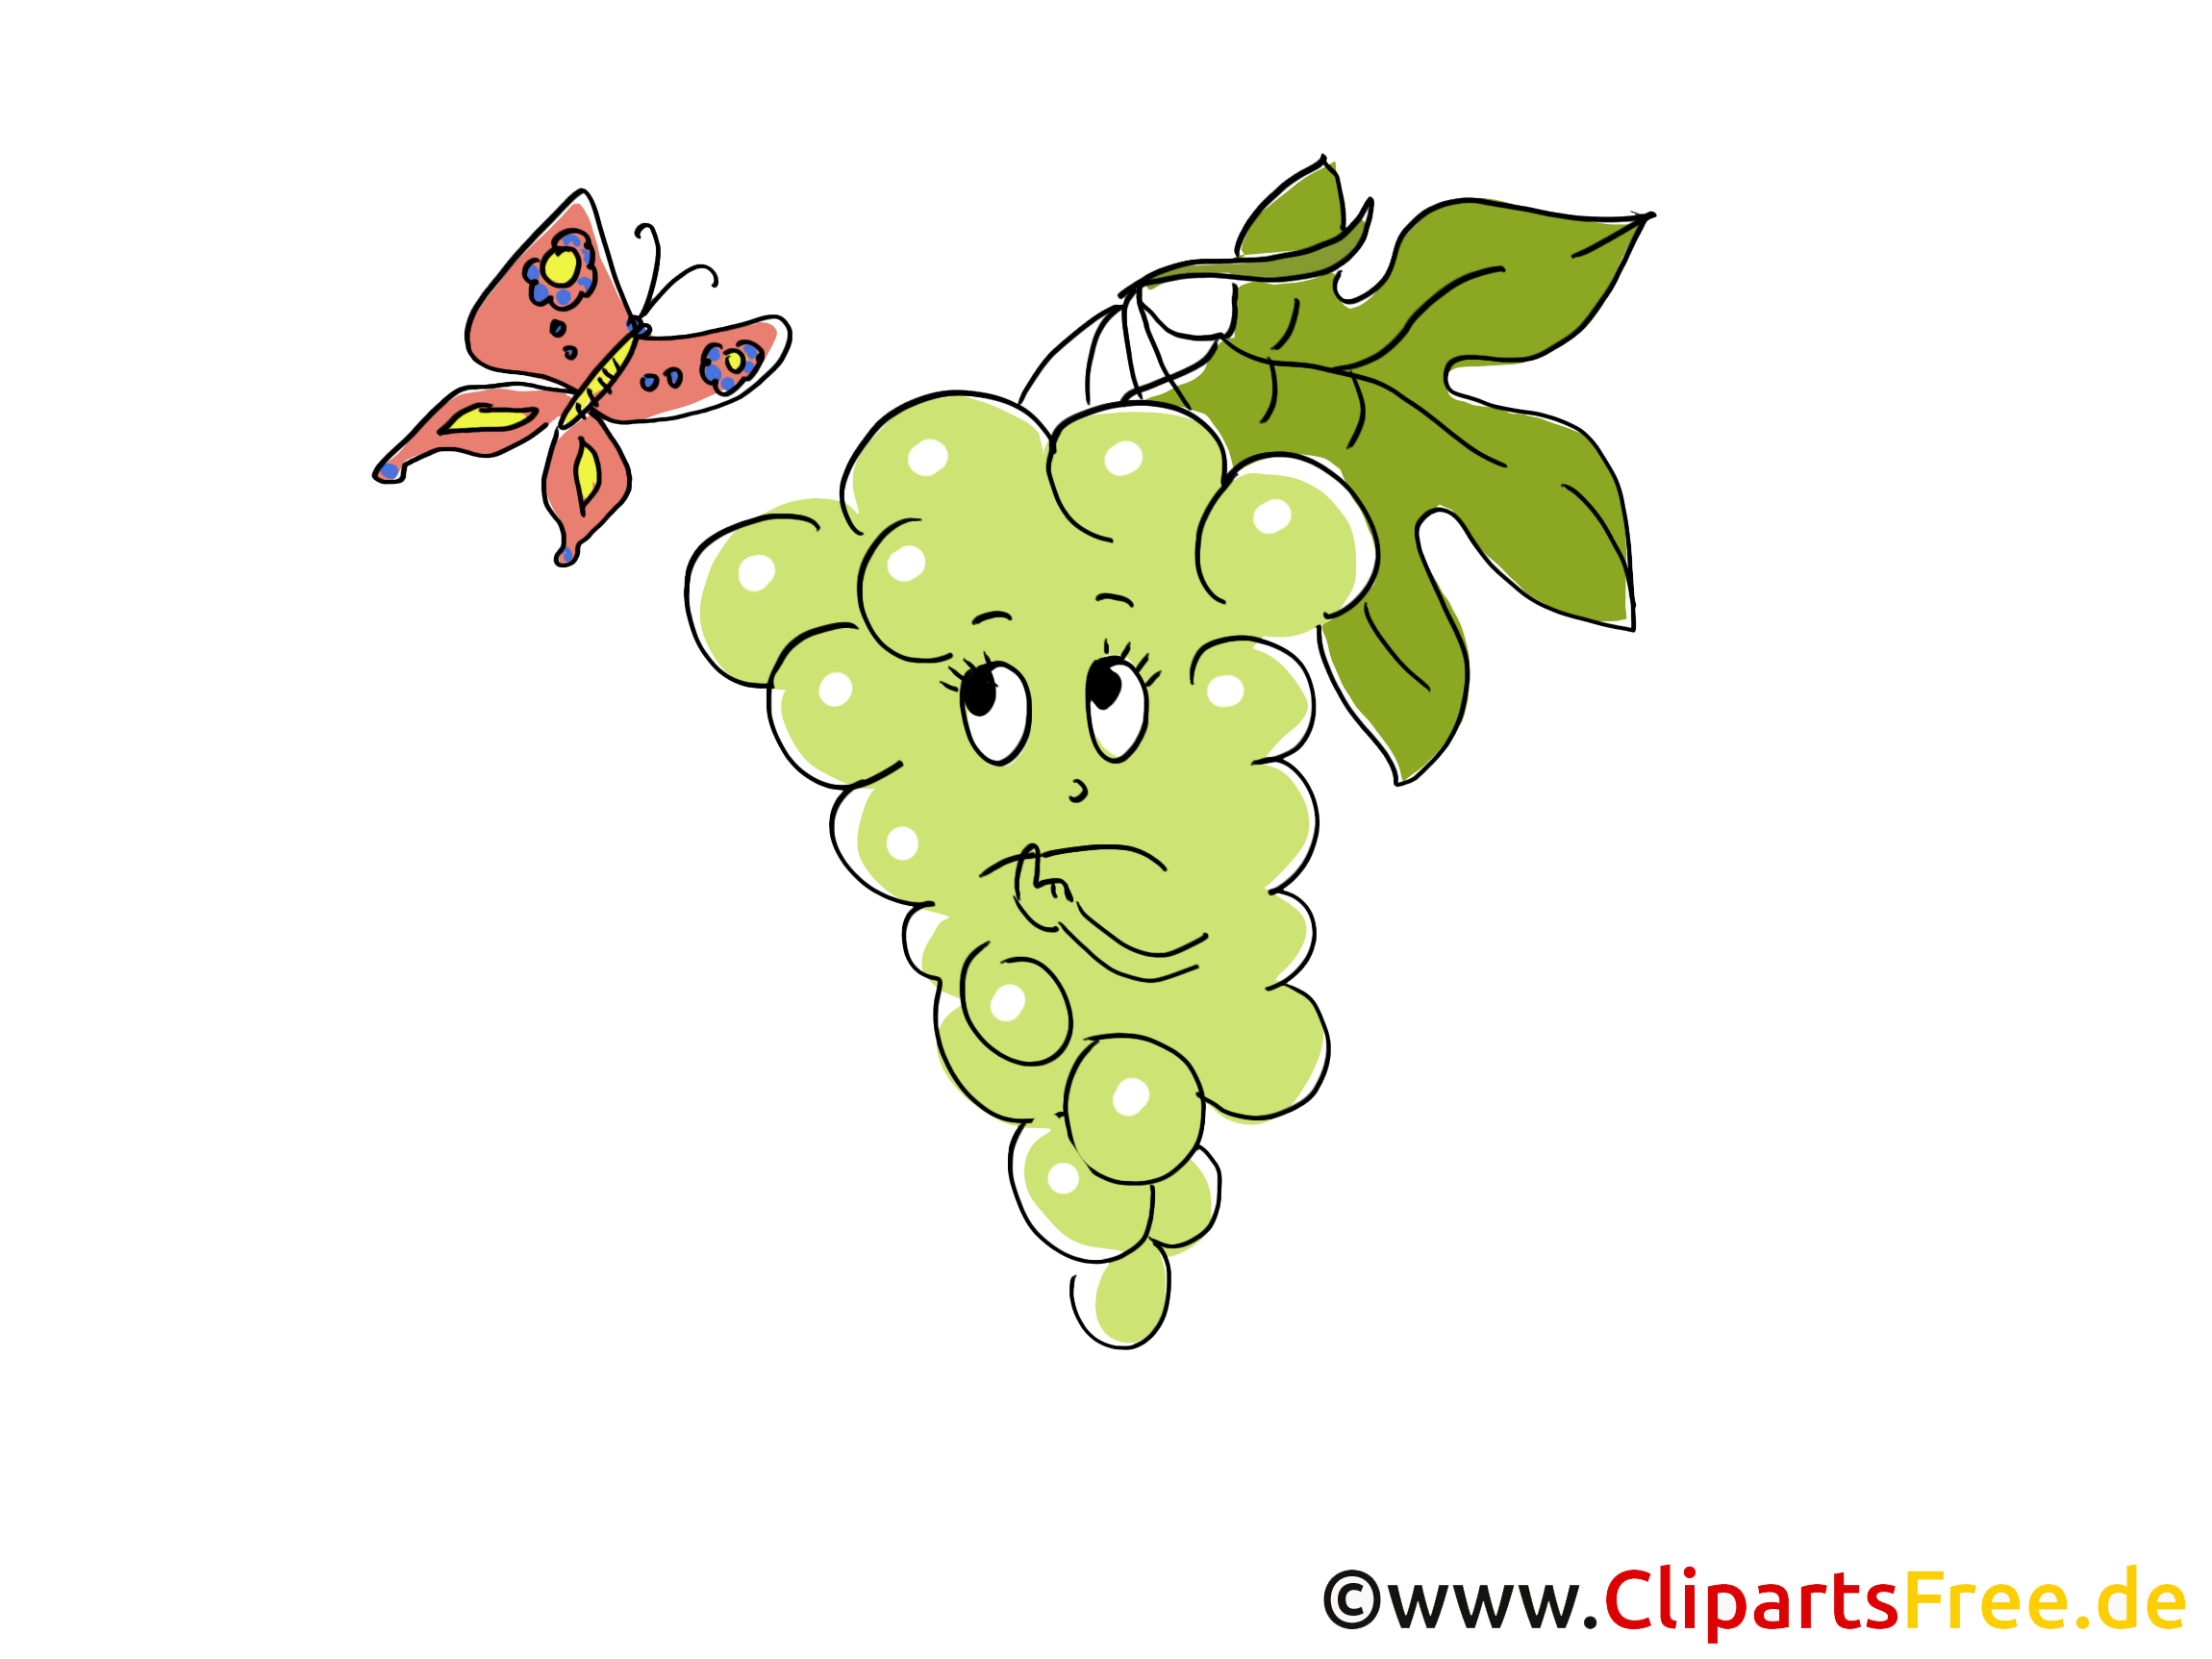 Raisin clip art gratuit – Fruits images